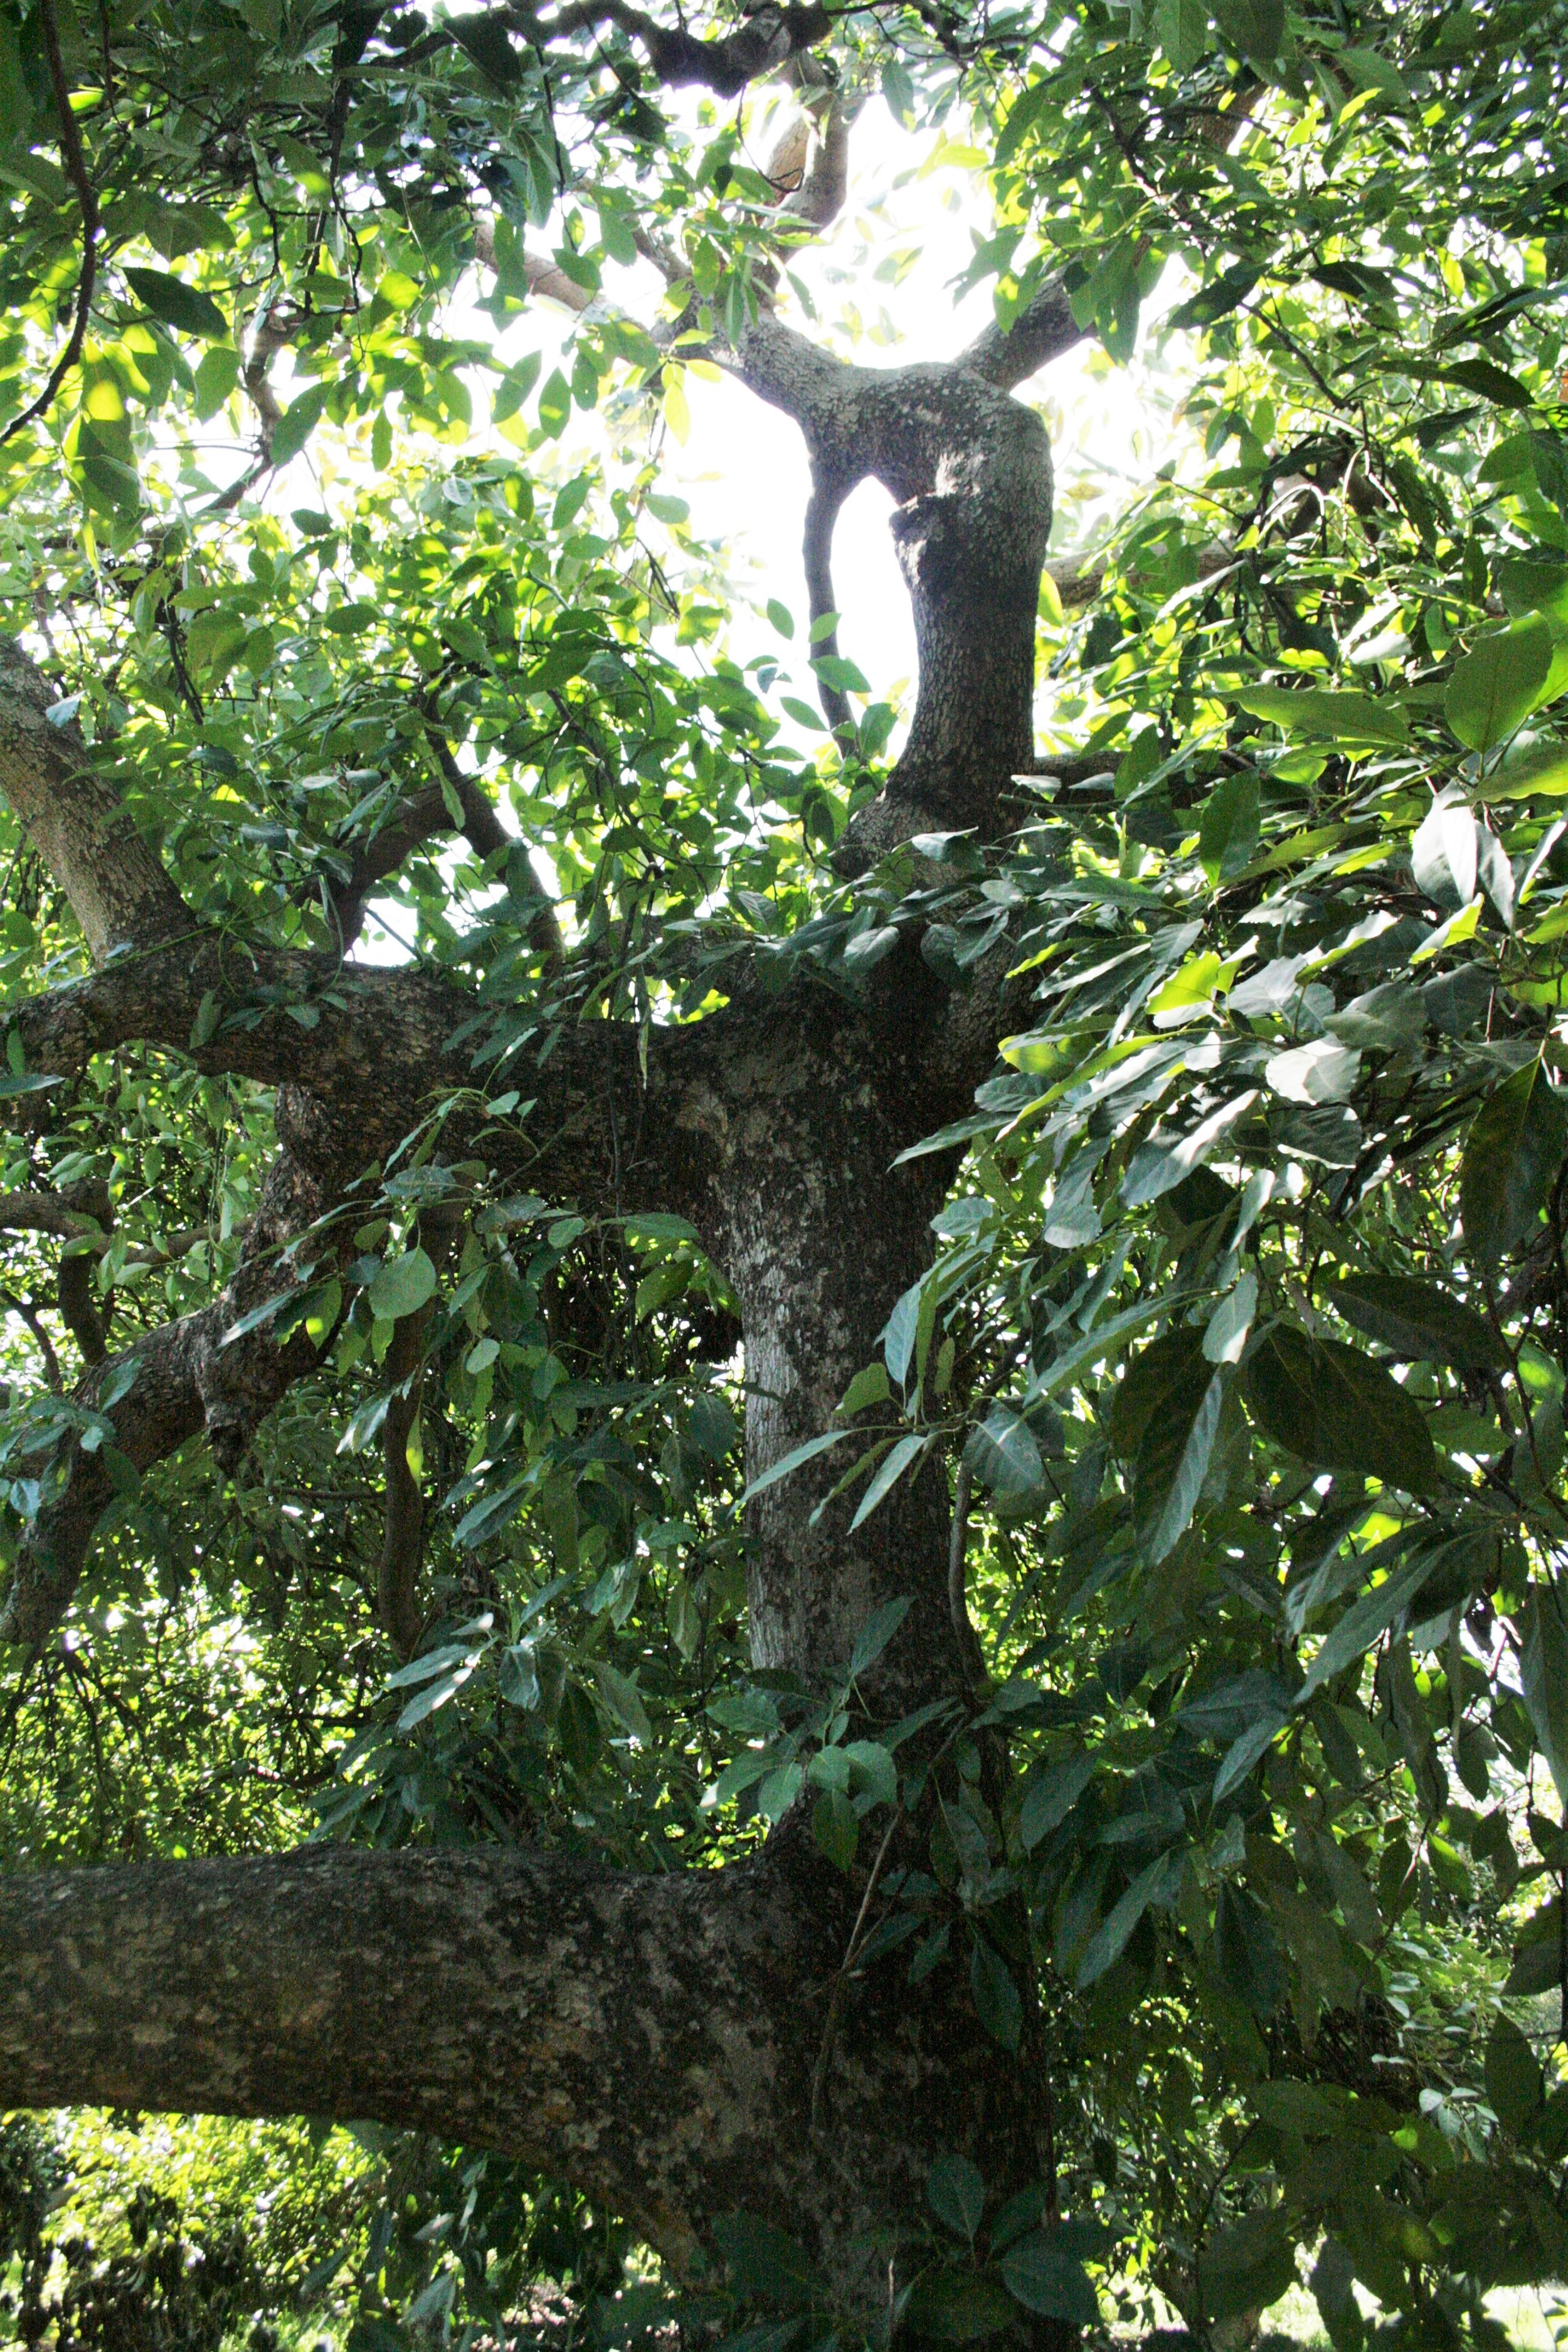 A large avocado tree's canopy shading the ground over its roots.